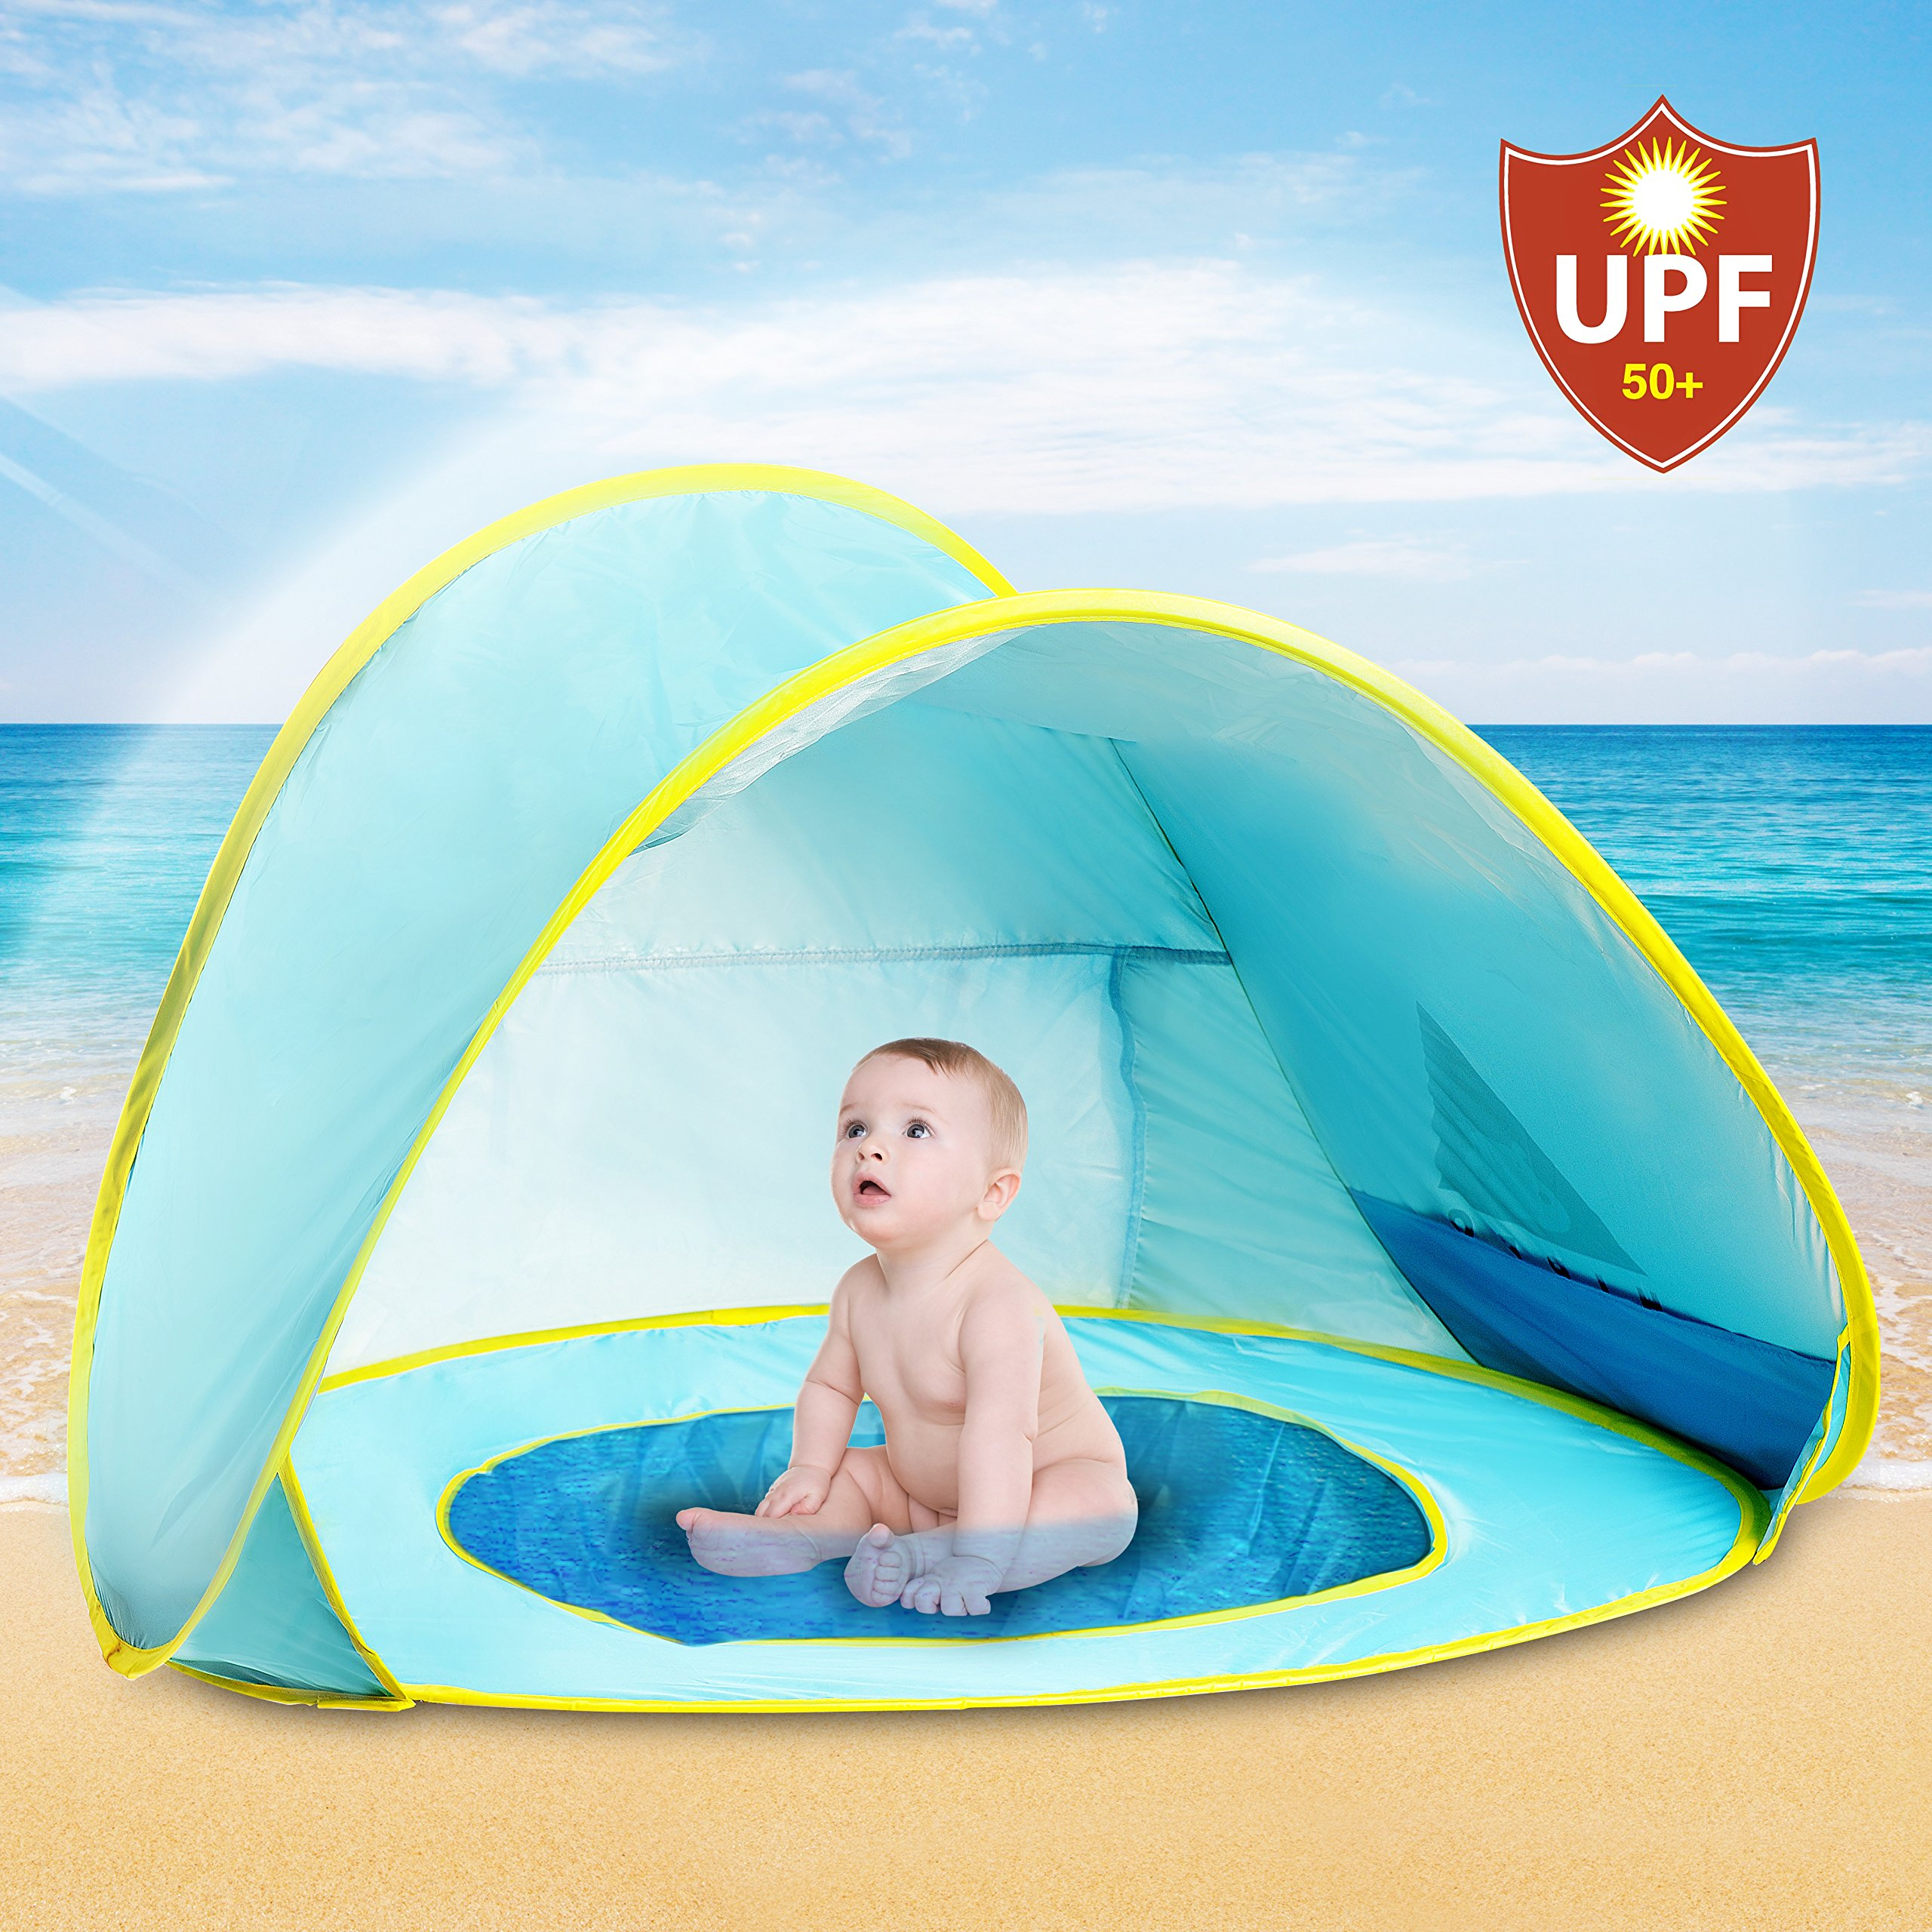 Hippo Creation UV Protection Baby Beach Tent with Pool, Pop-up Sun Canopy Shelter, Kiddie Beach Umbrella, Excellent for Infant and Kid up to 3 Years Old